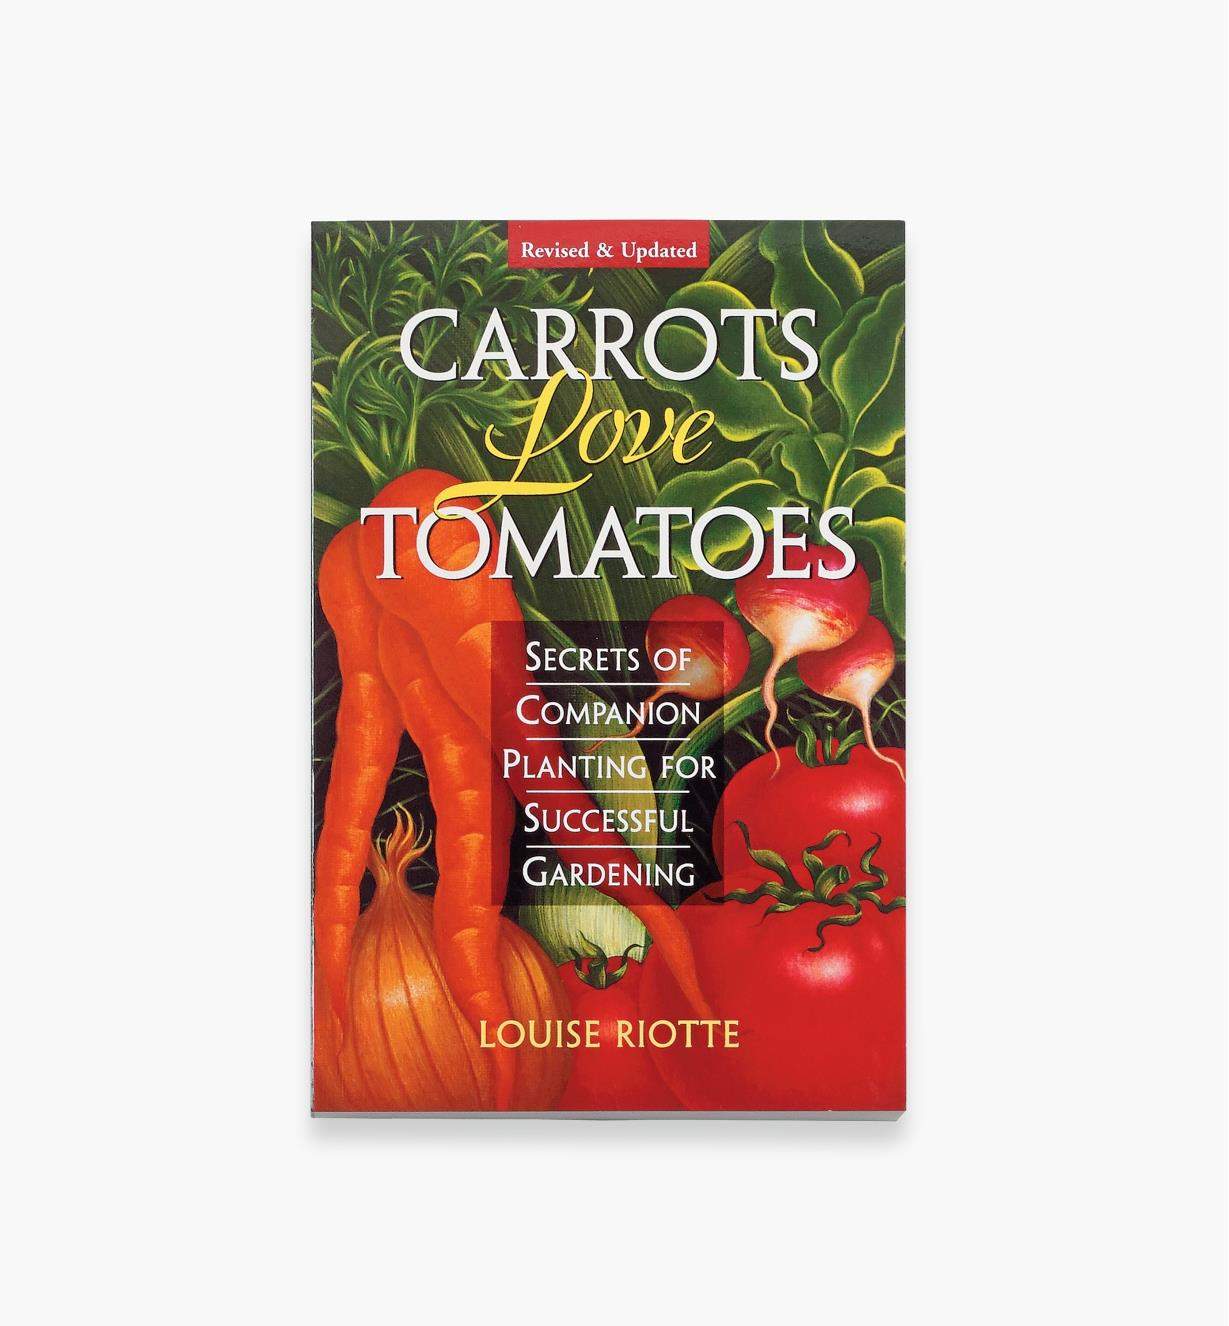 LA925 - Carrots Love Tomatoes